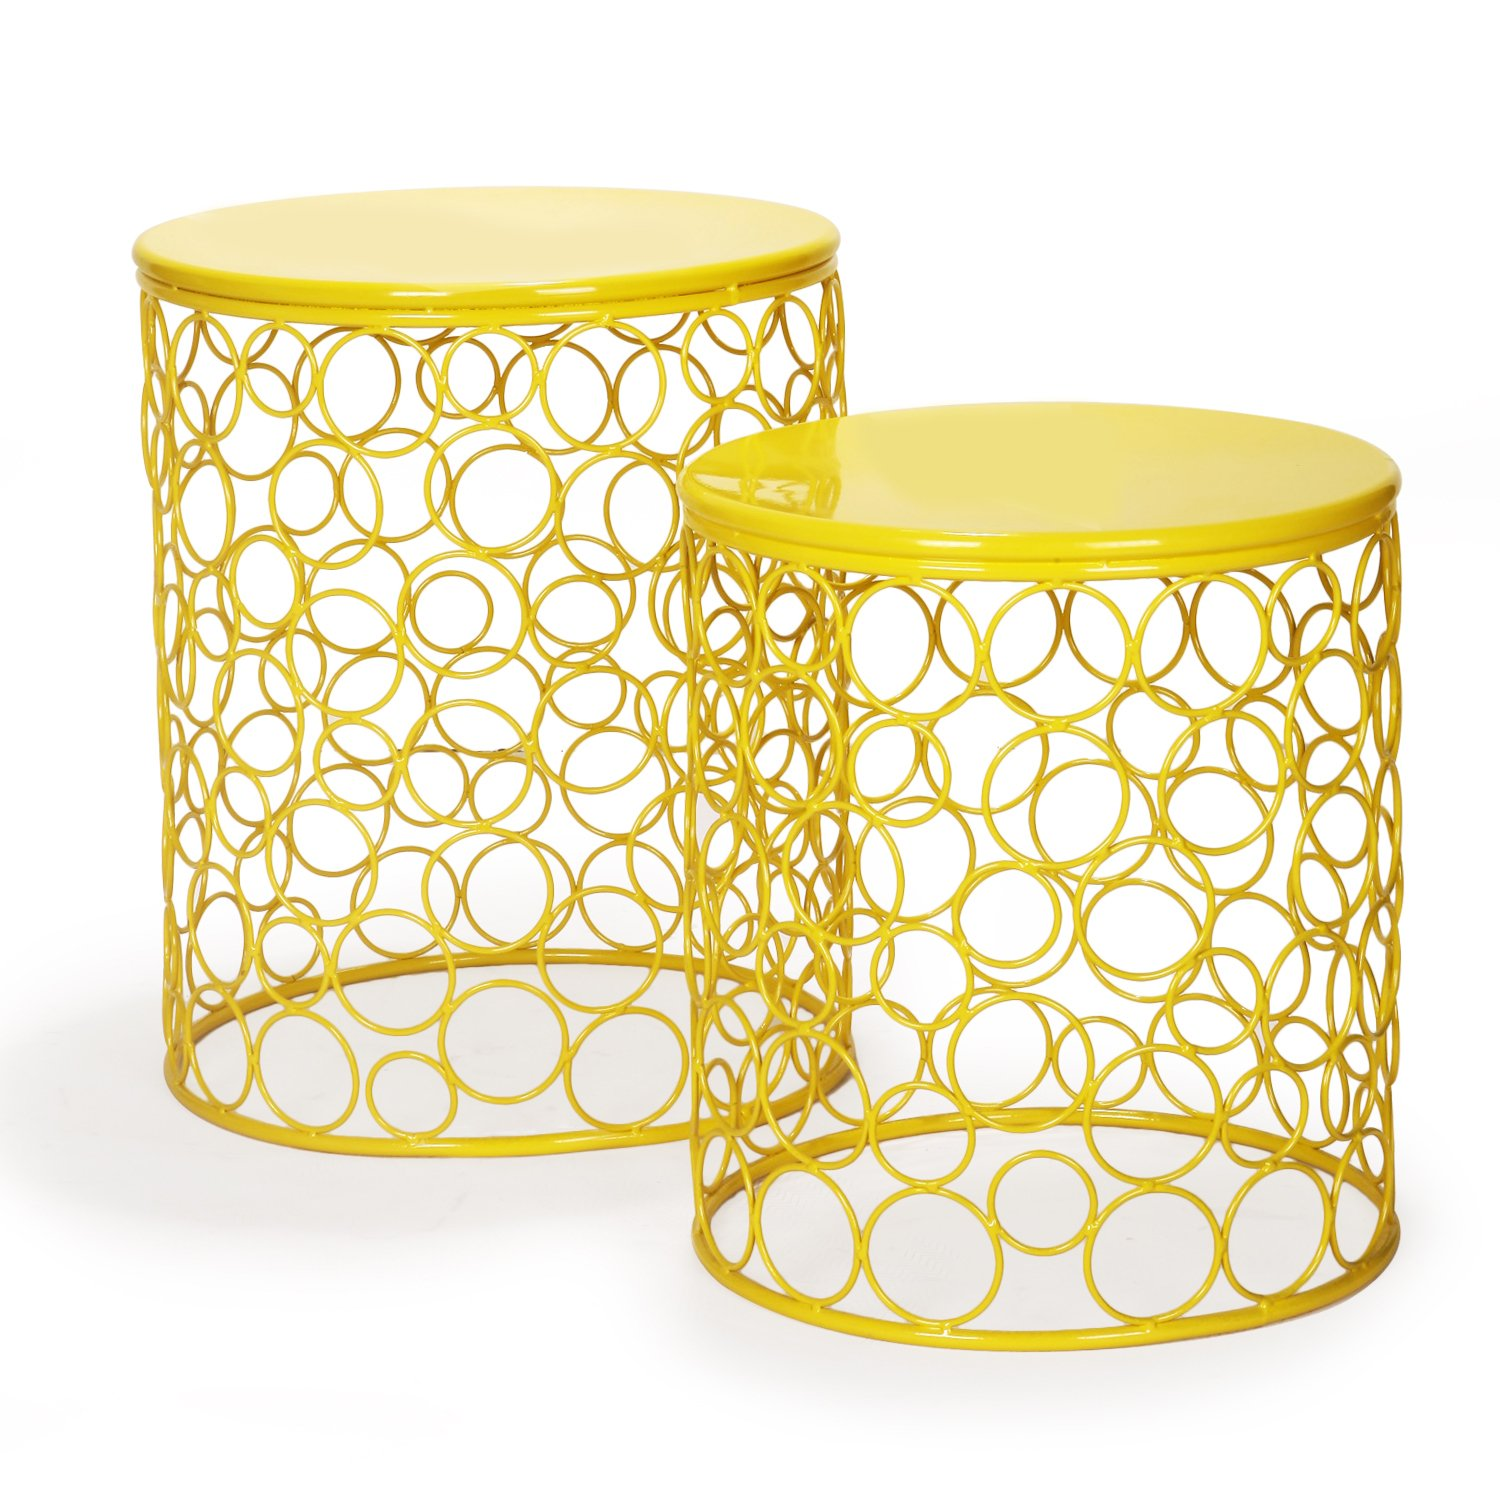 Homebeez Morden Designed Nesting End Coffee Table, Set of 2 (Yellow)